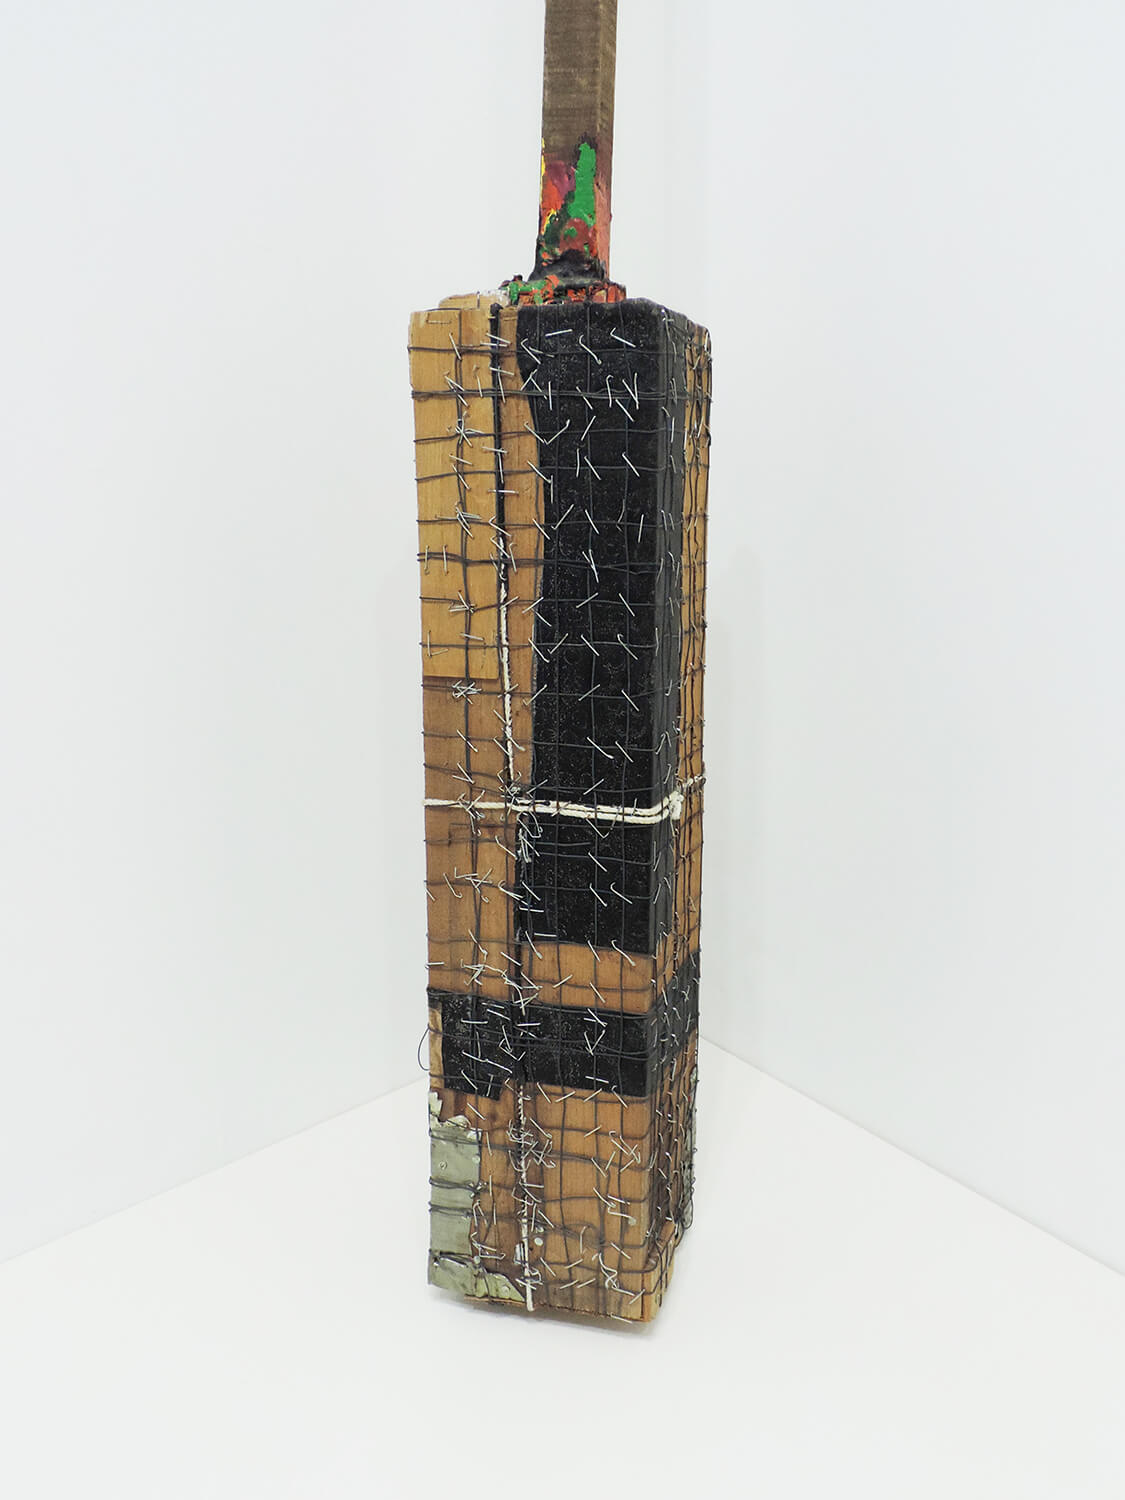 <b>Music / 音楽 - detail</b><br>Acrylic on wood, wire, rope, metal, cloth, nails 199.5 × 12 × 13 cm 1985